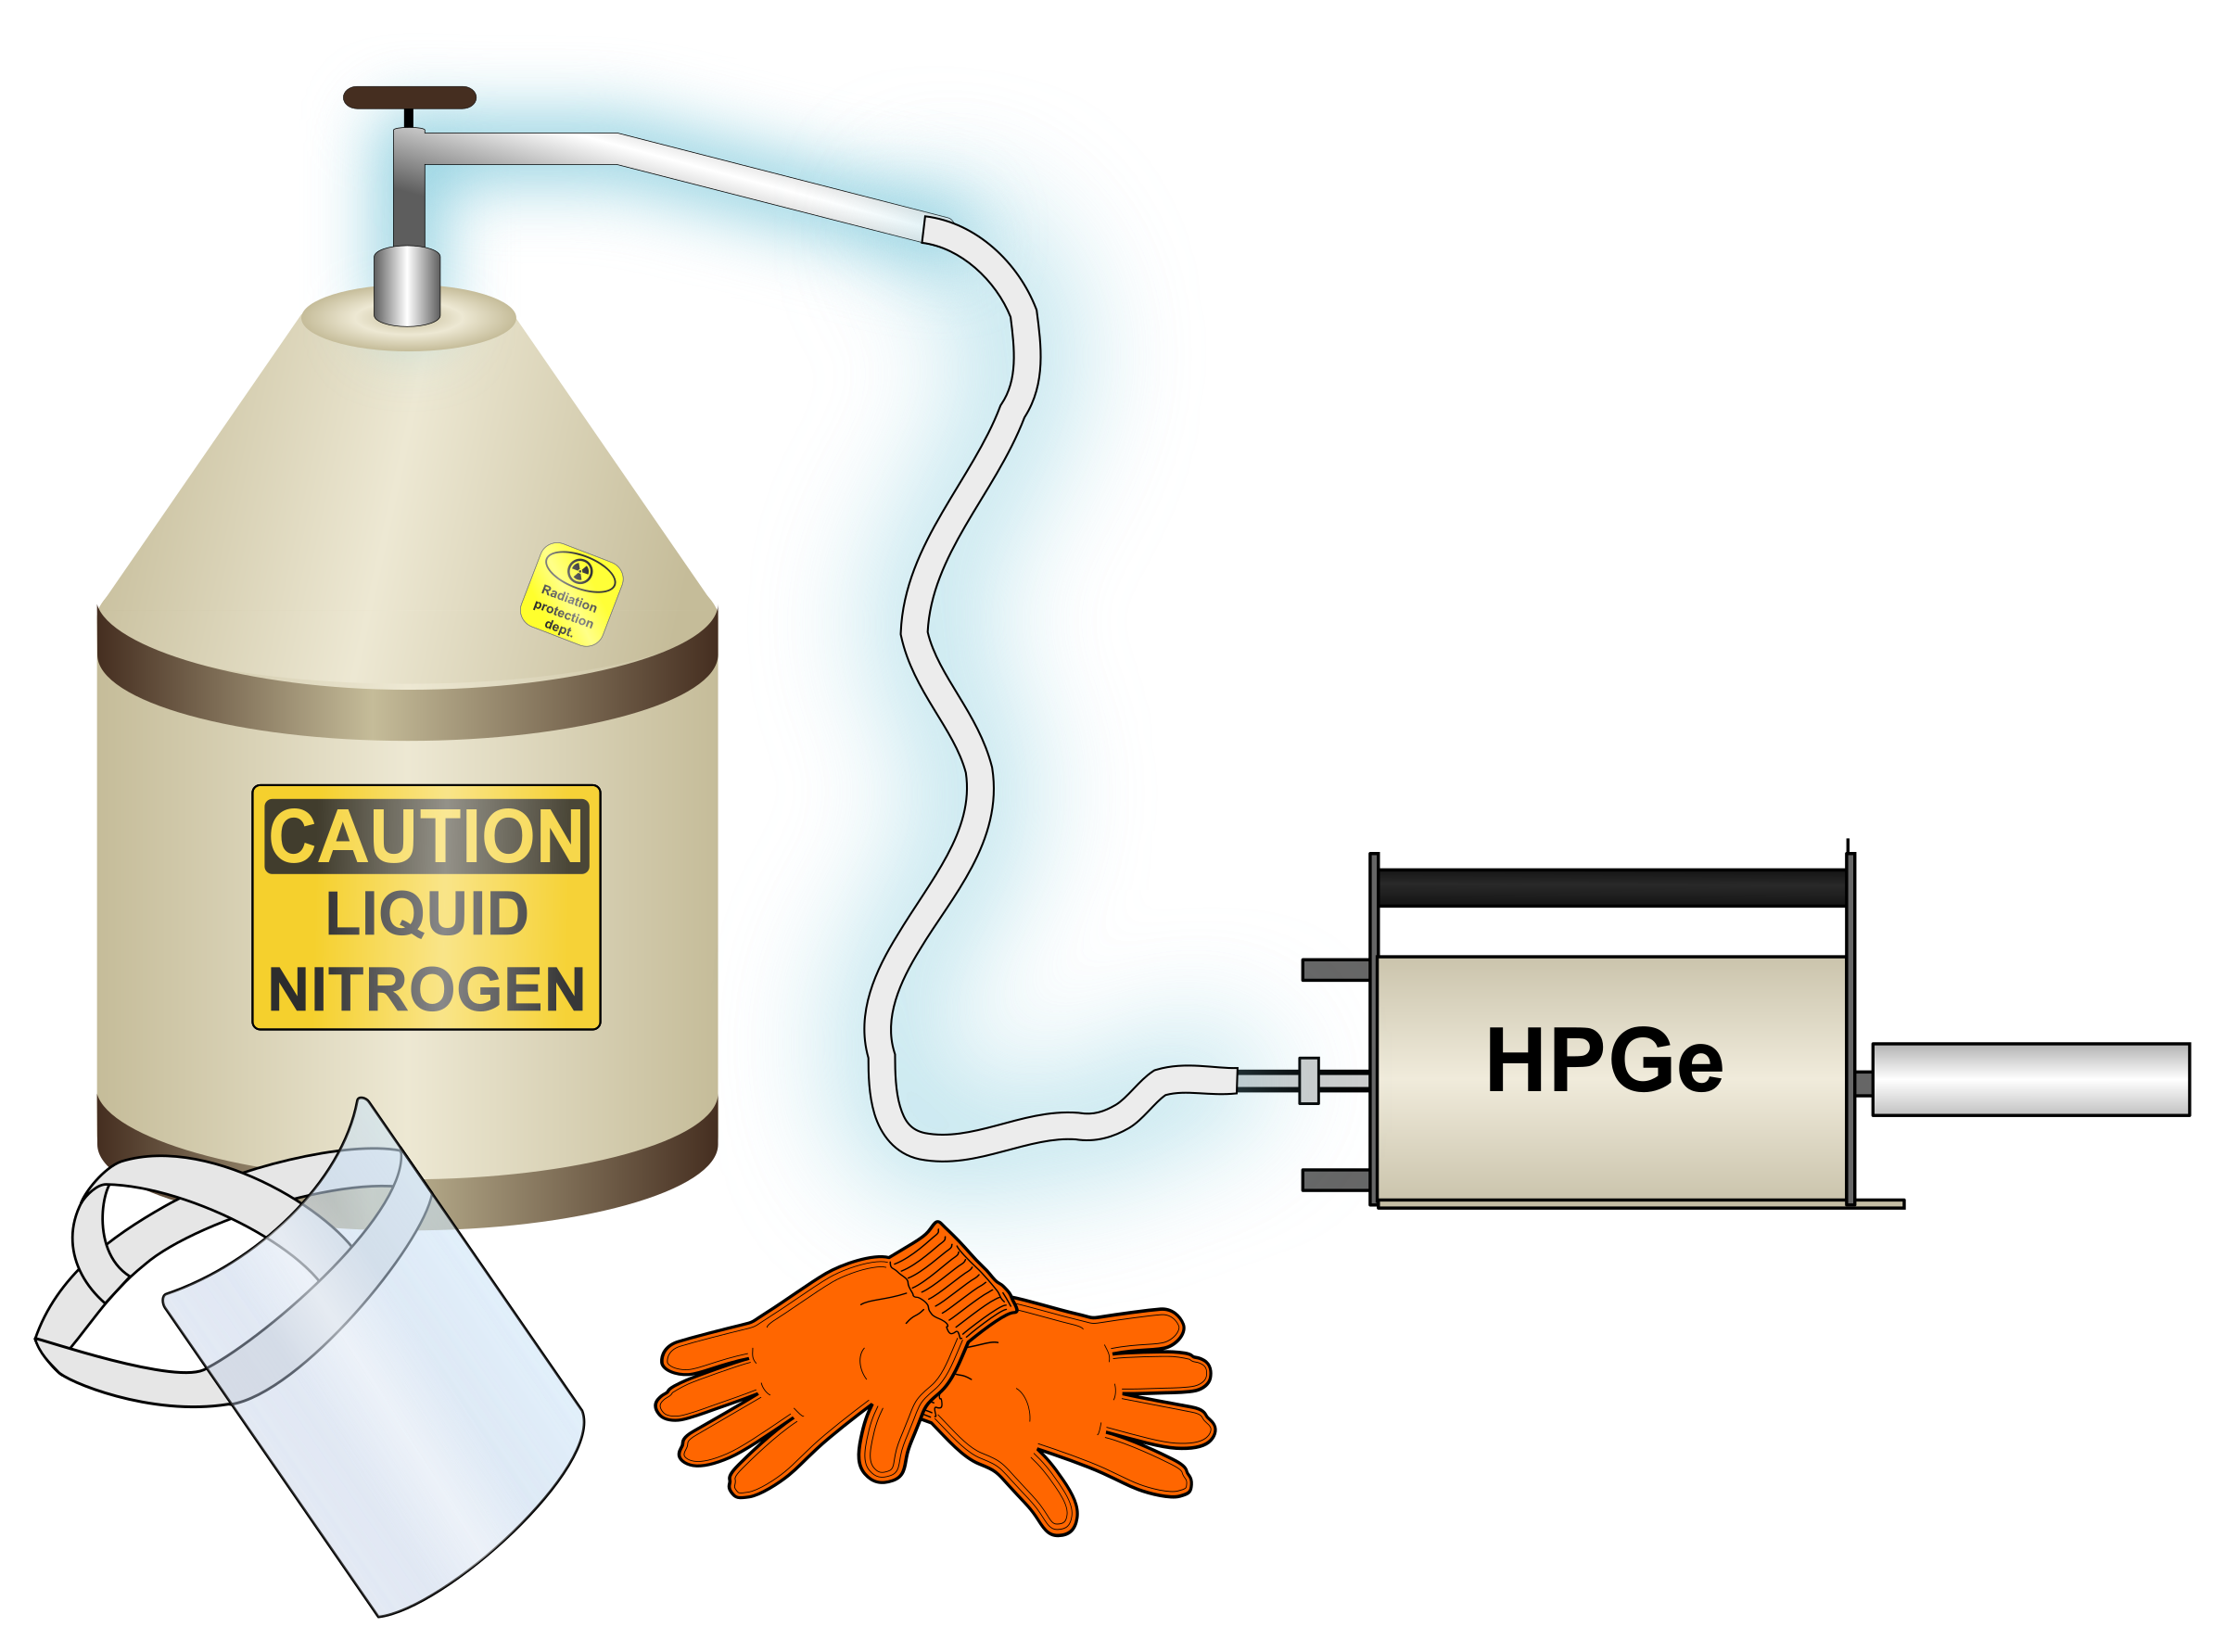 filling HPGe detector with liquid nitrogen by Juhele